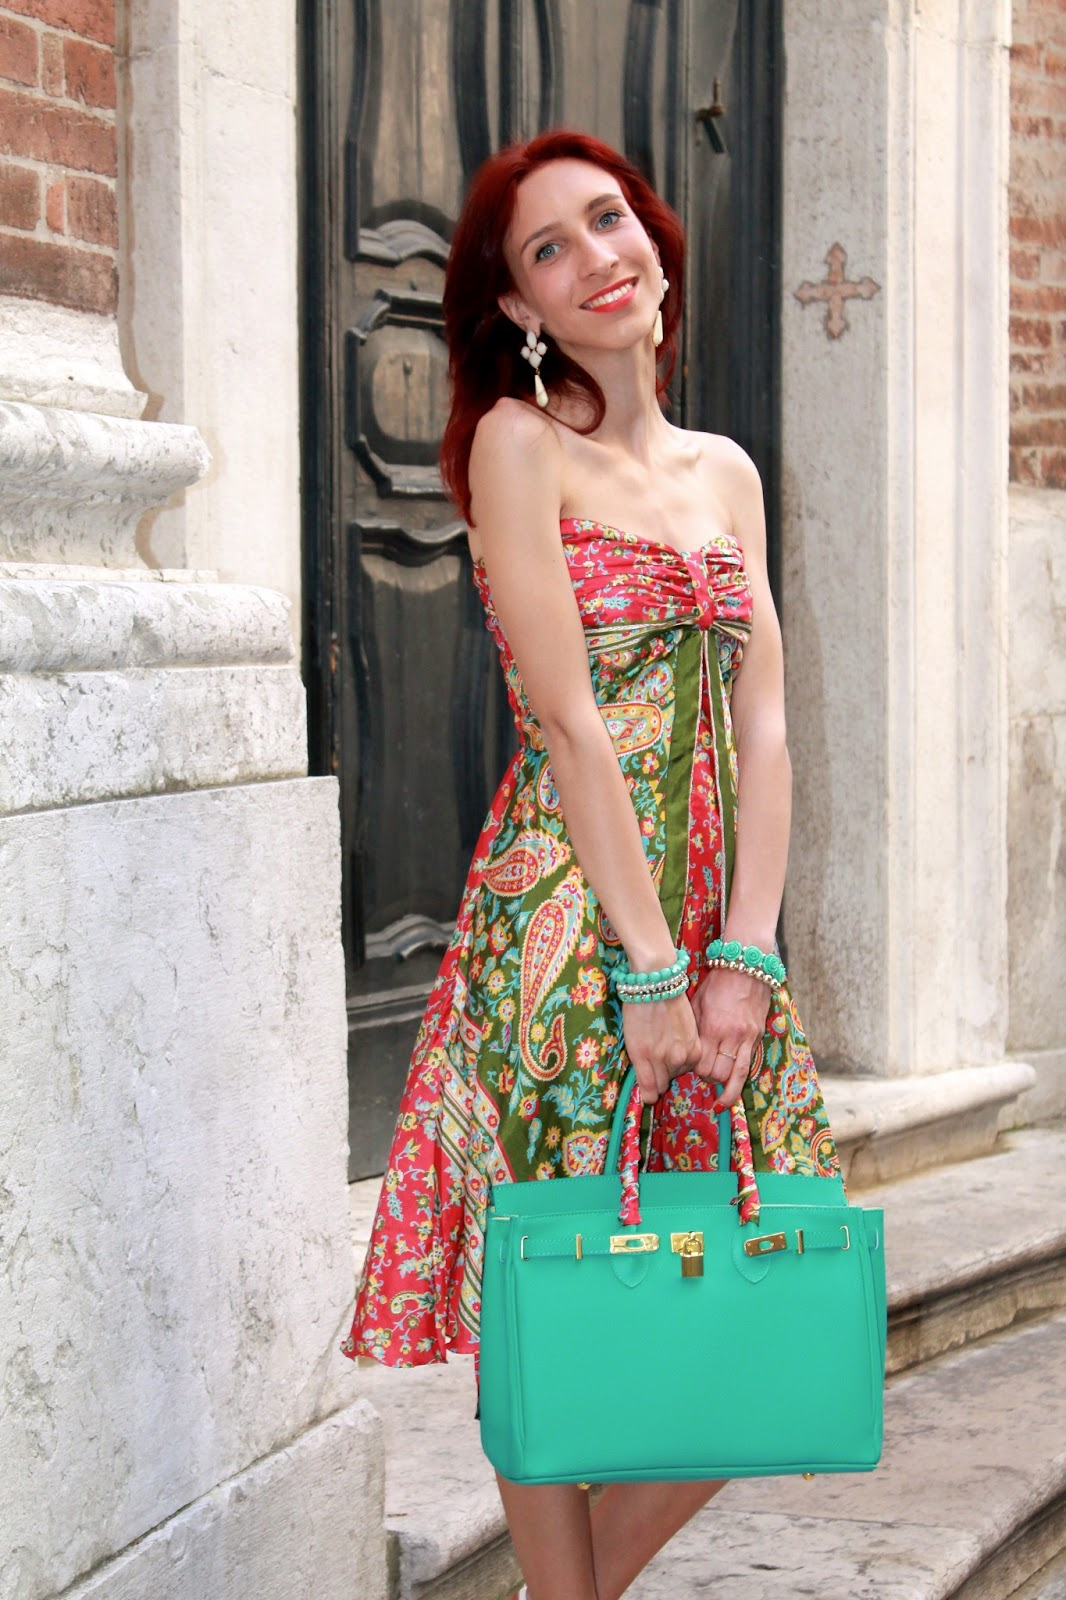 this fancy dress, green water, and give it a touch of style and  elegance putting around the handle of the Birkin inspired a kind of scarf  of the same